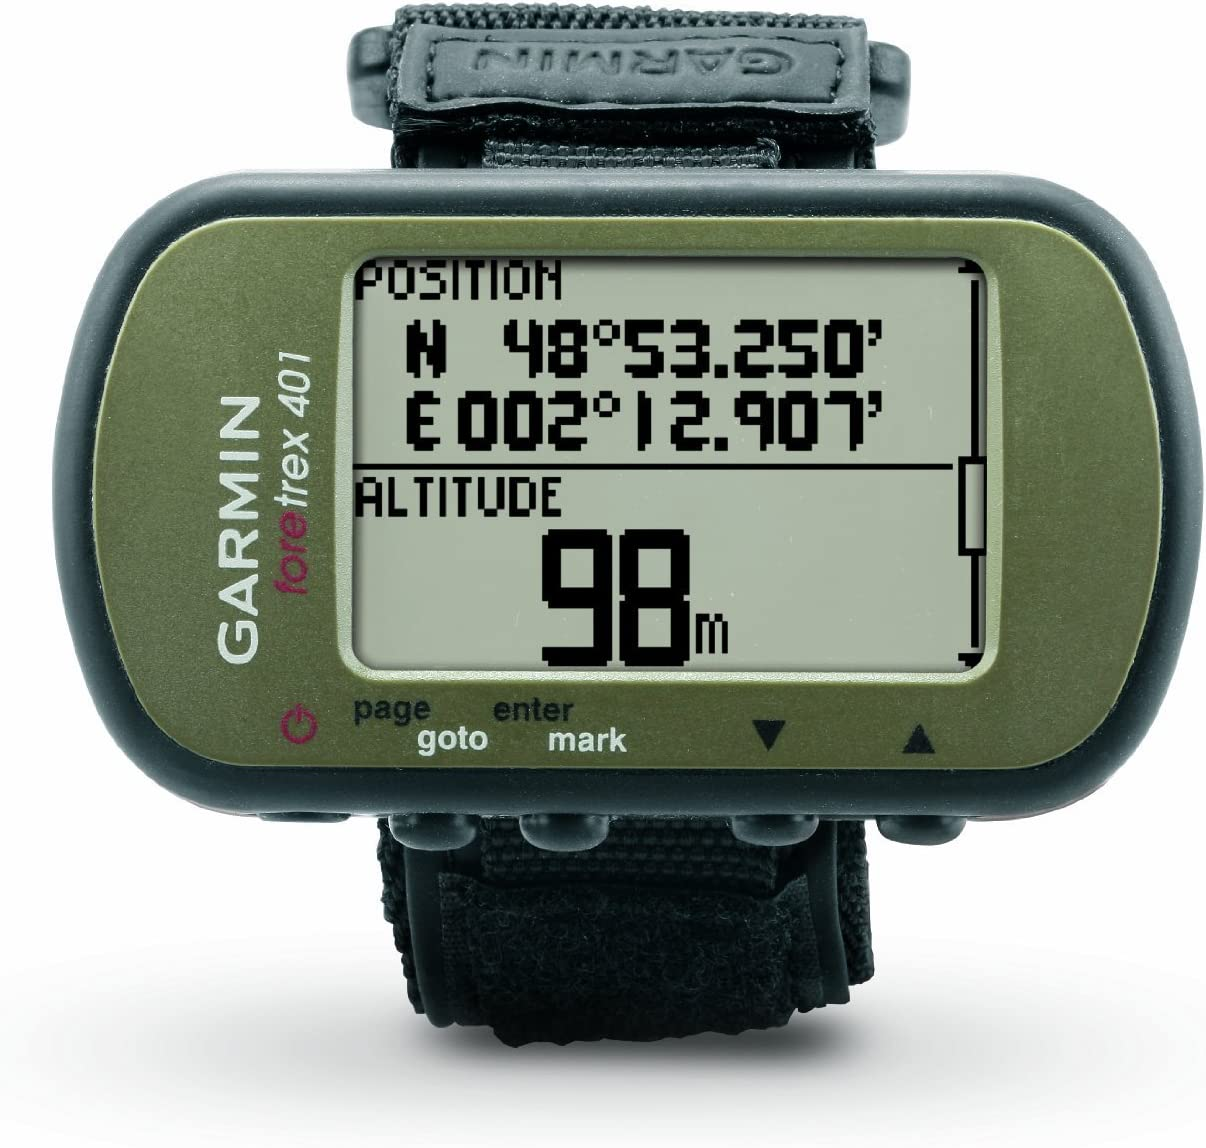 Image result for Garmin Foretrex 401 Waterproof Hiking GPS